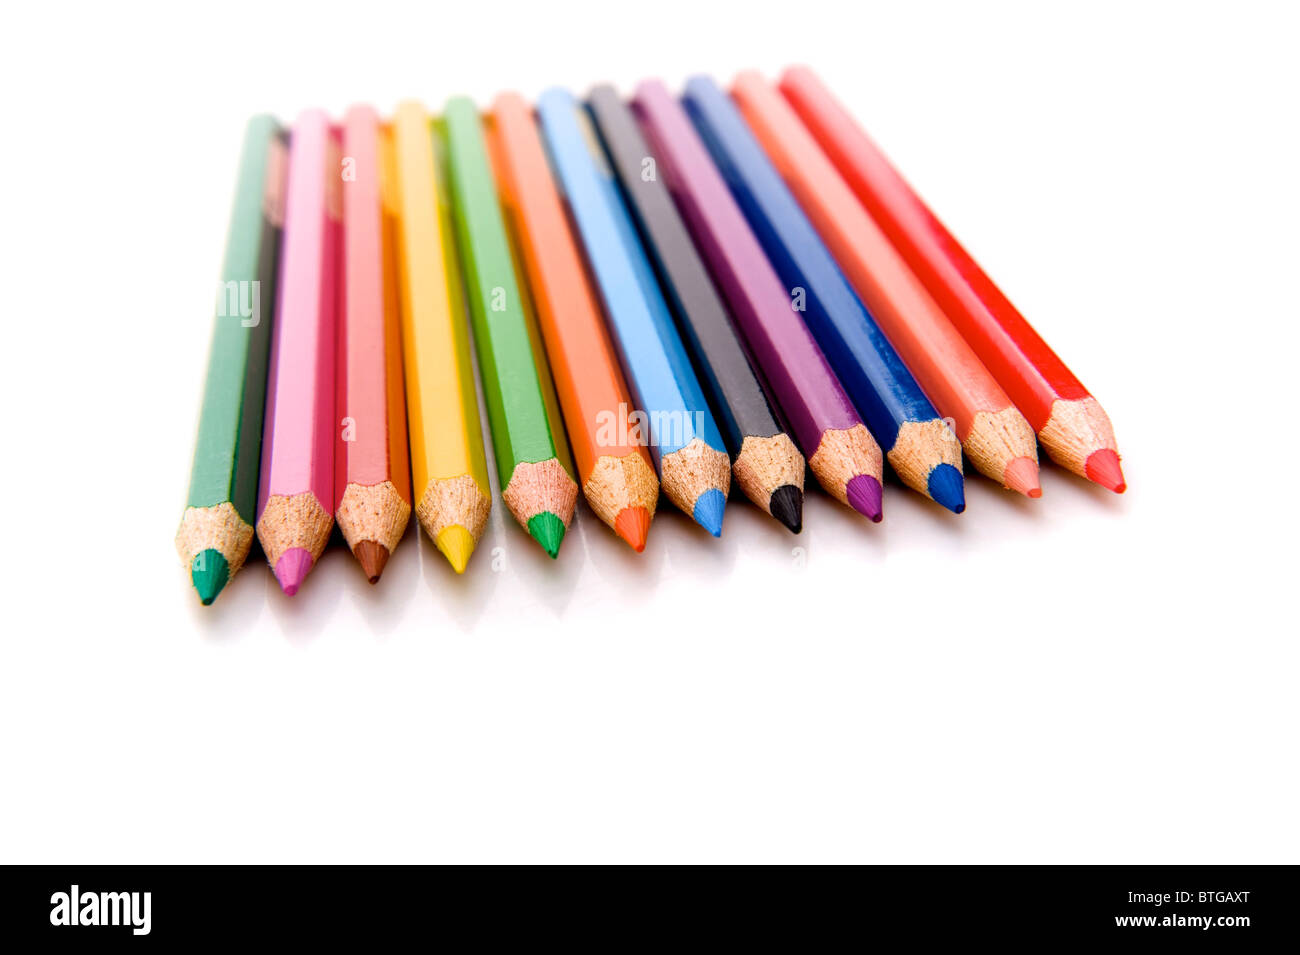 row of the colored pencils - Stock Image